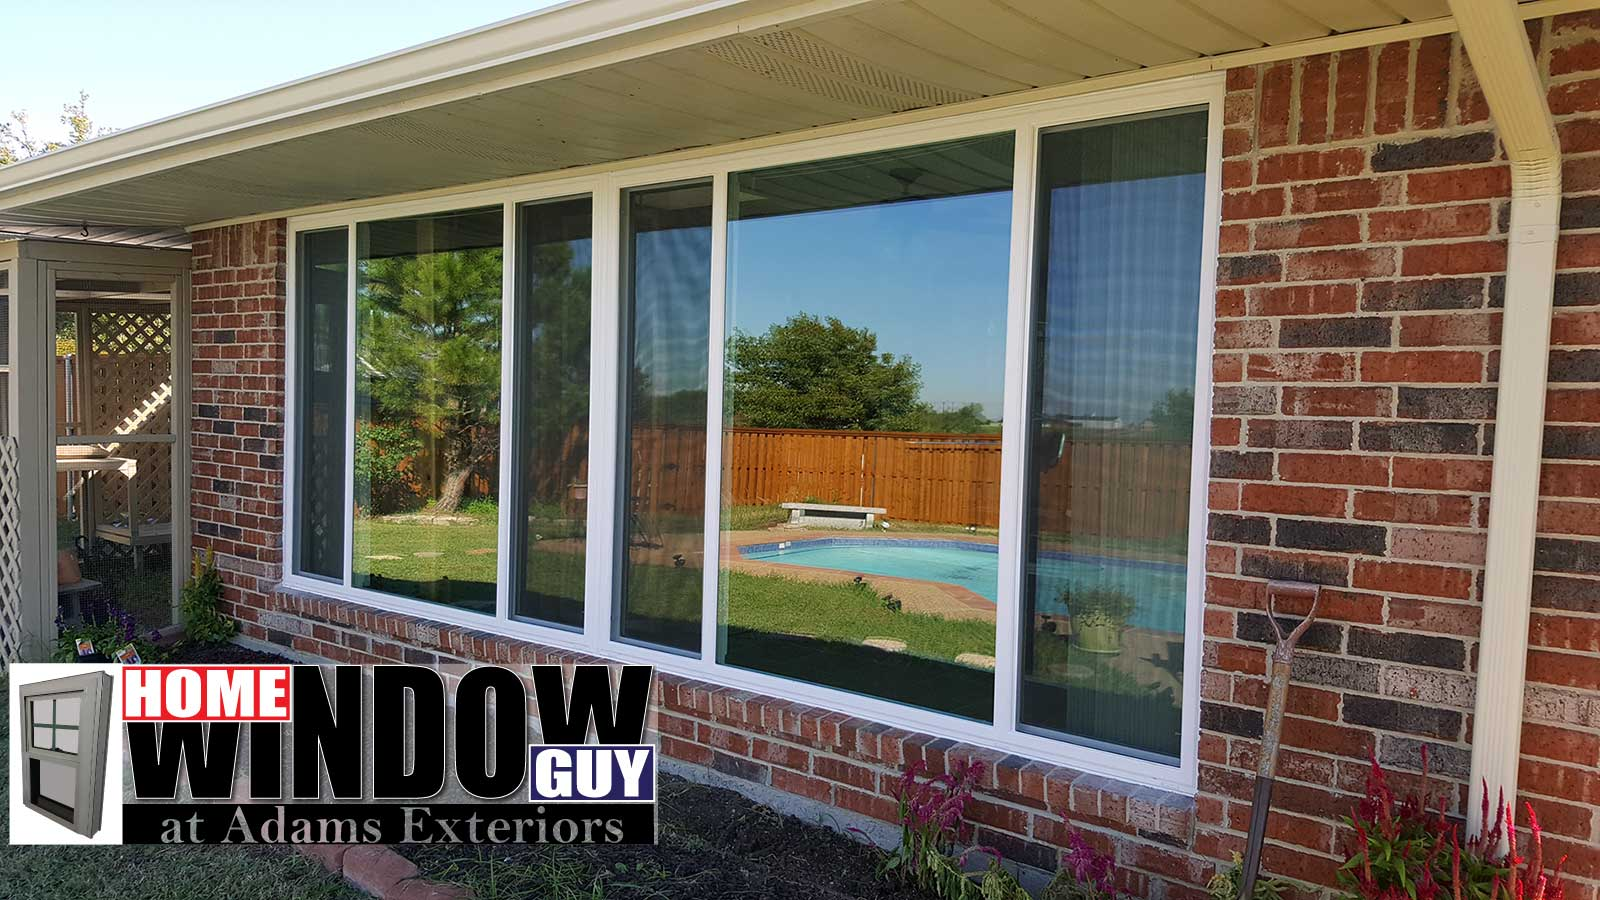 Home window guy replacement windows dallas ft worth tx for Home window replacement